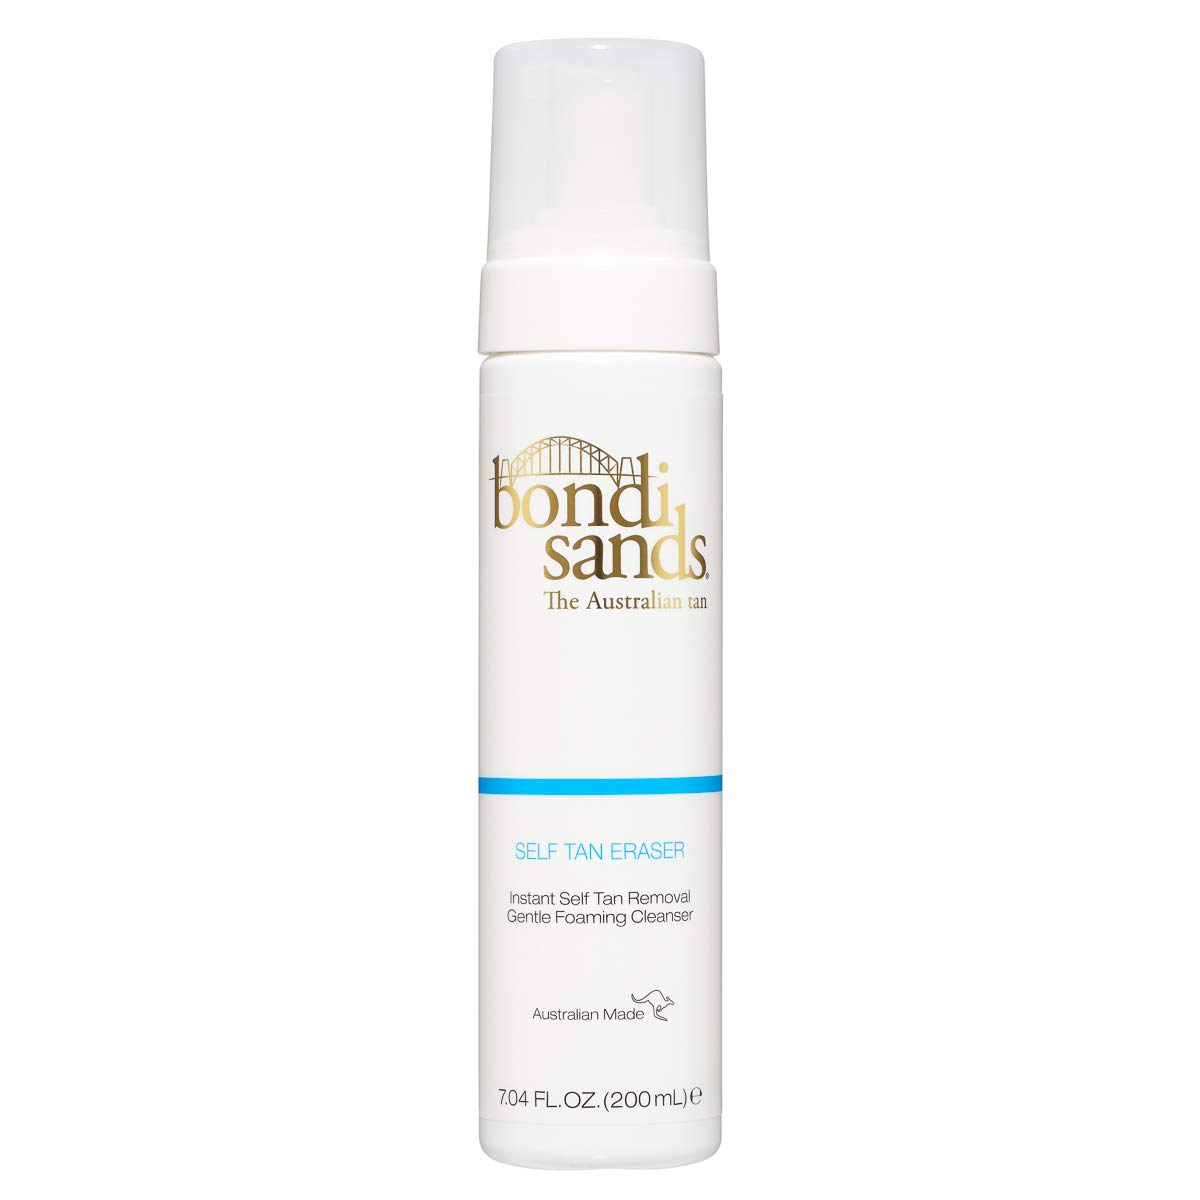 Bondi Sands Self Tanner Remover - Removes Sunless Tanning Lotion, Foams, and Mists (7.04 FL OZ) by Bondi Sands